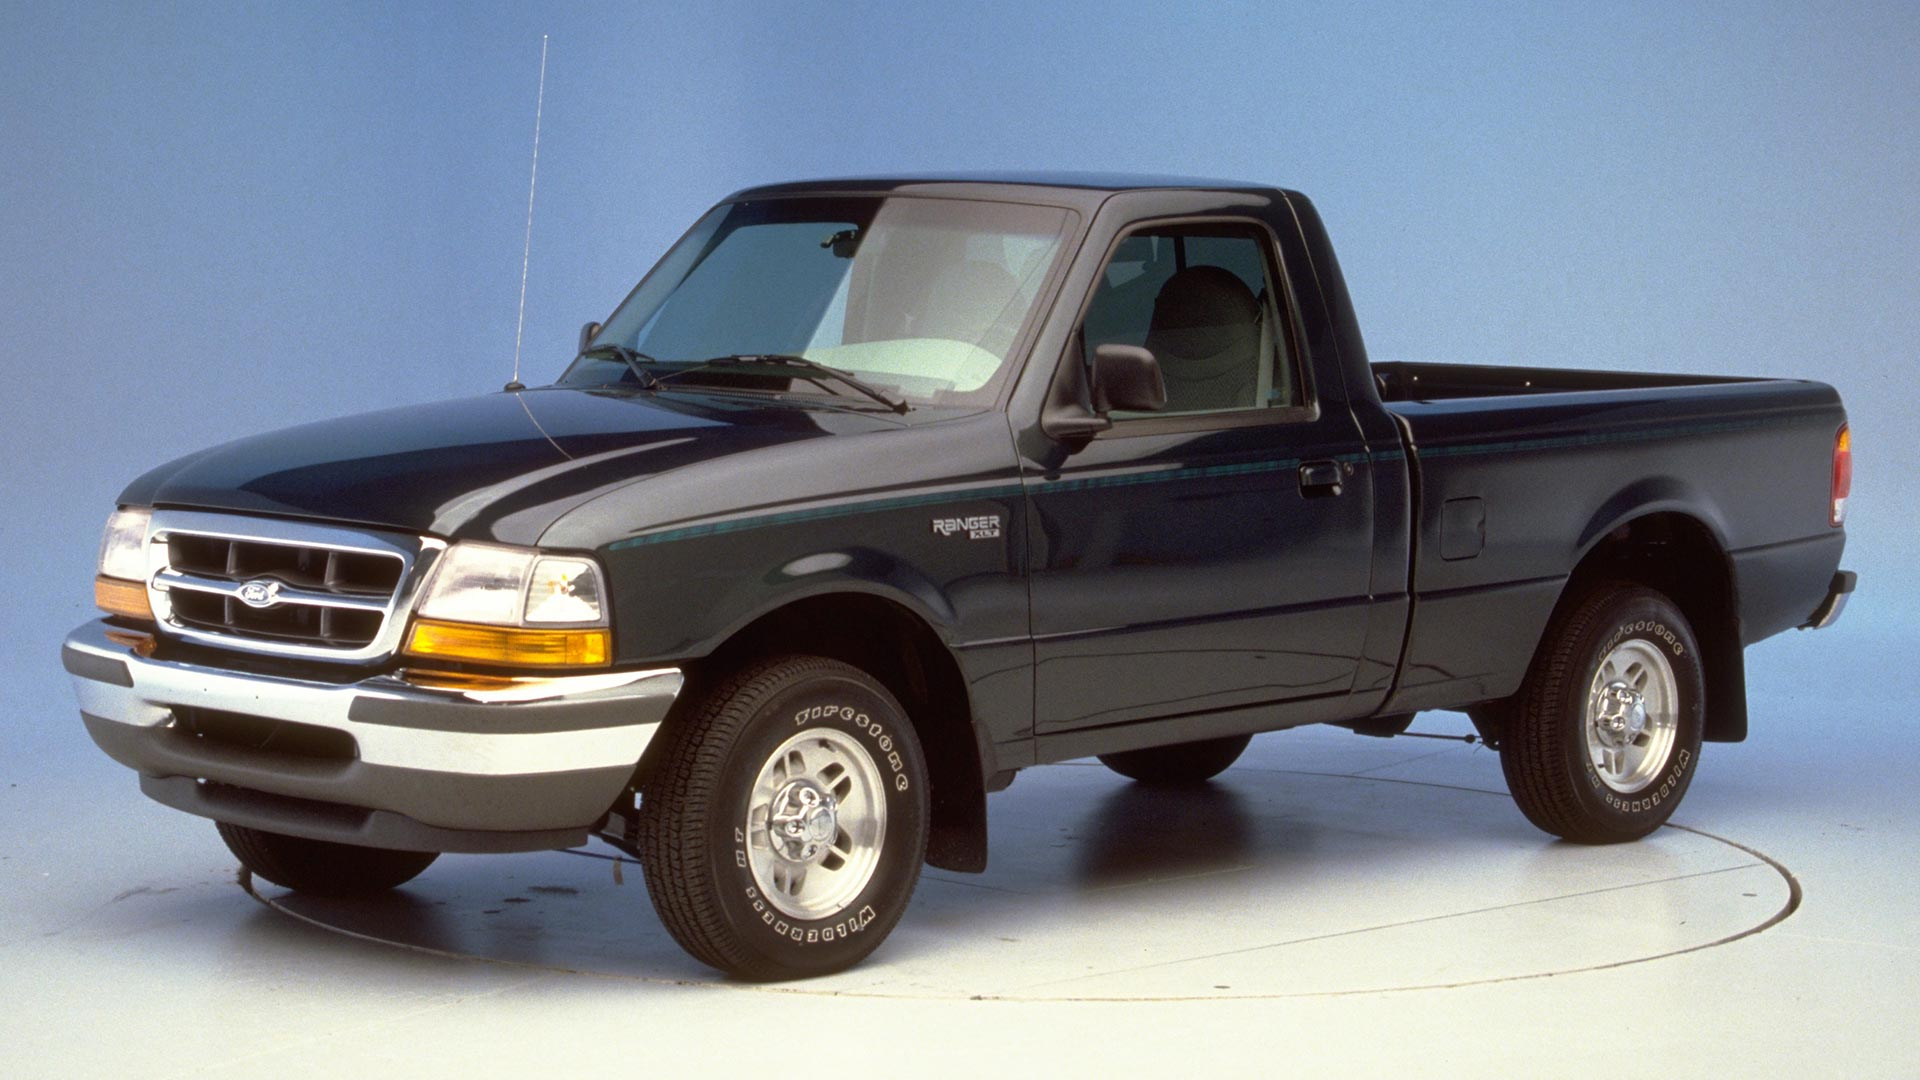 2005 Ford Ranger Regular cab pickup